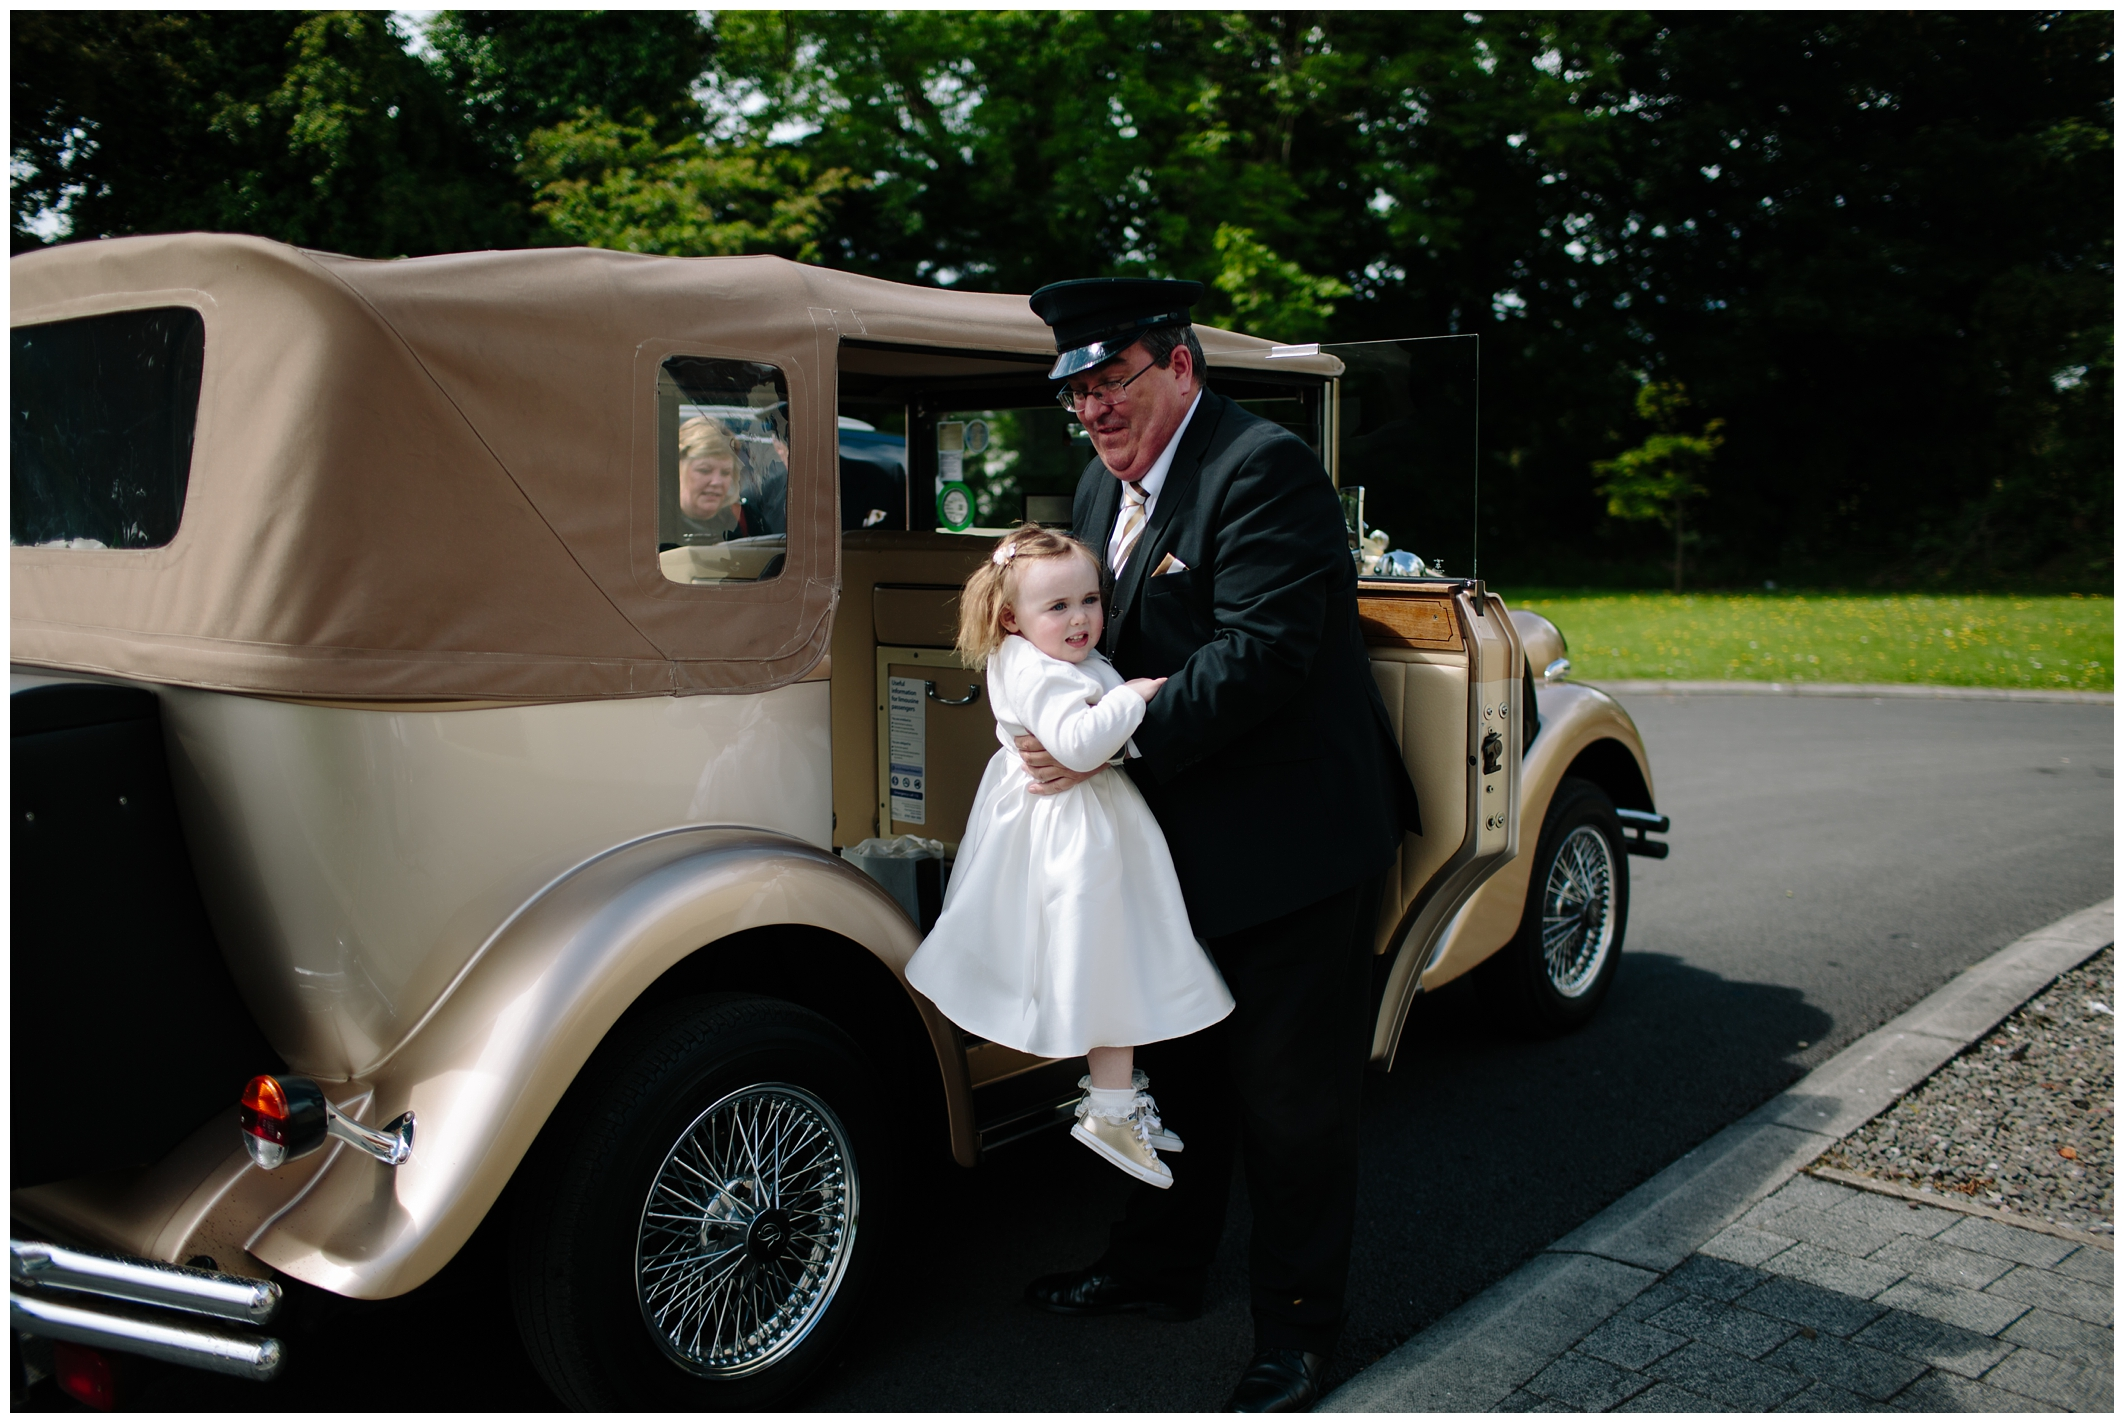 sinead_emmet_farnham_estate_wedding_jude_browne_photography_0065.jpg